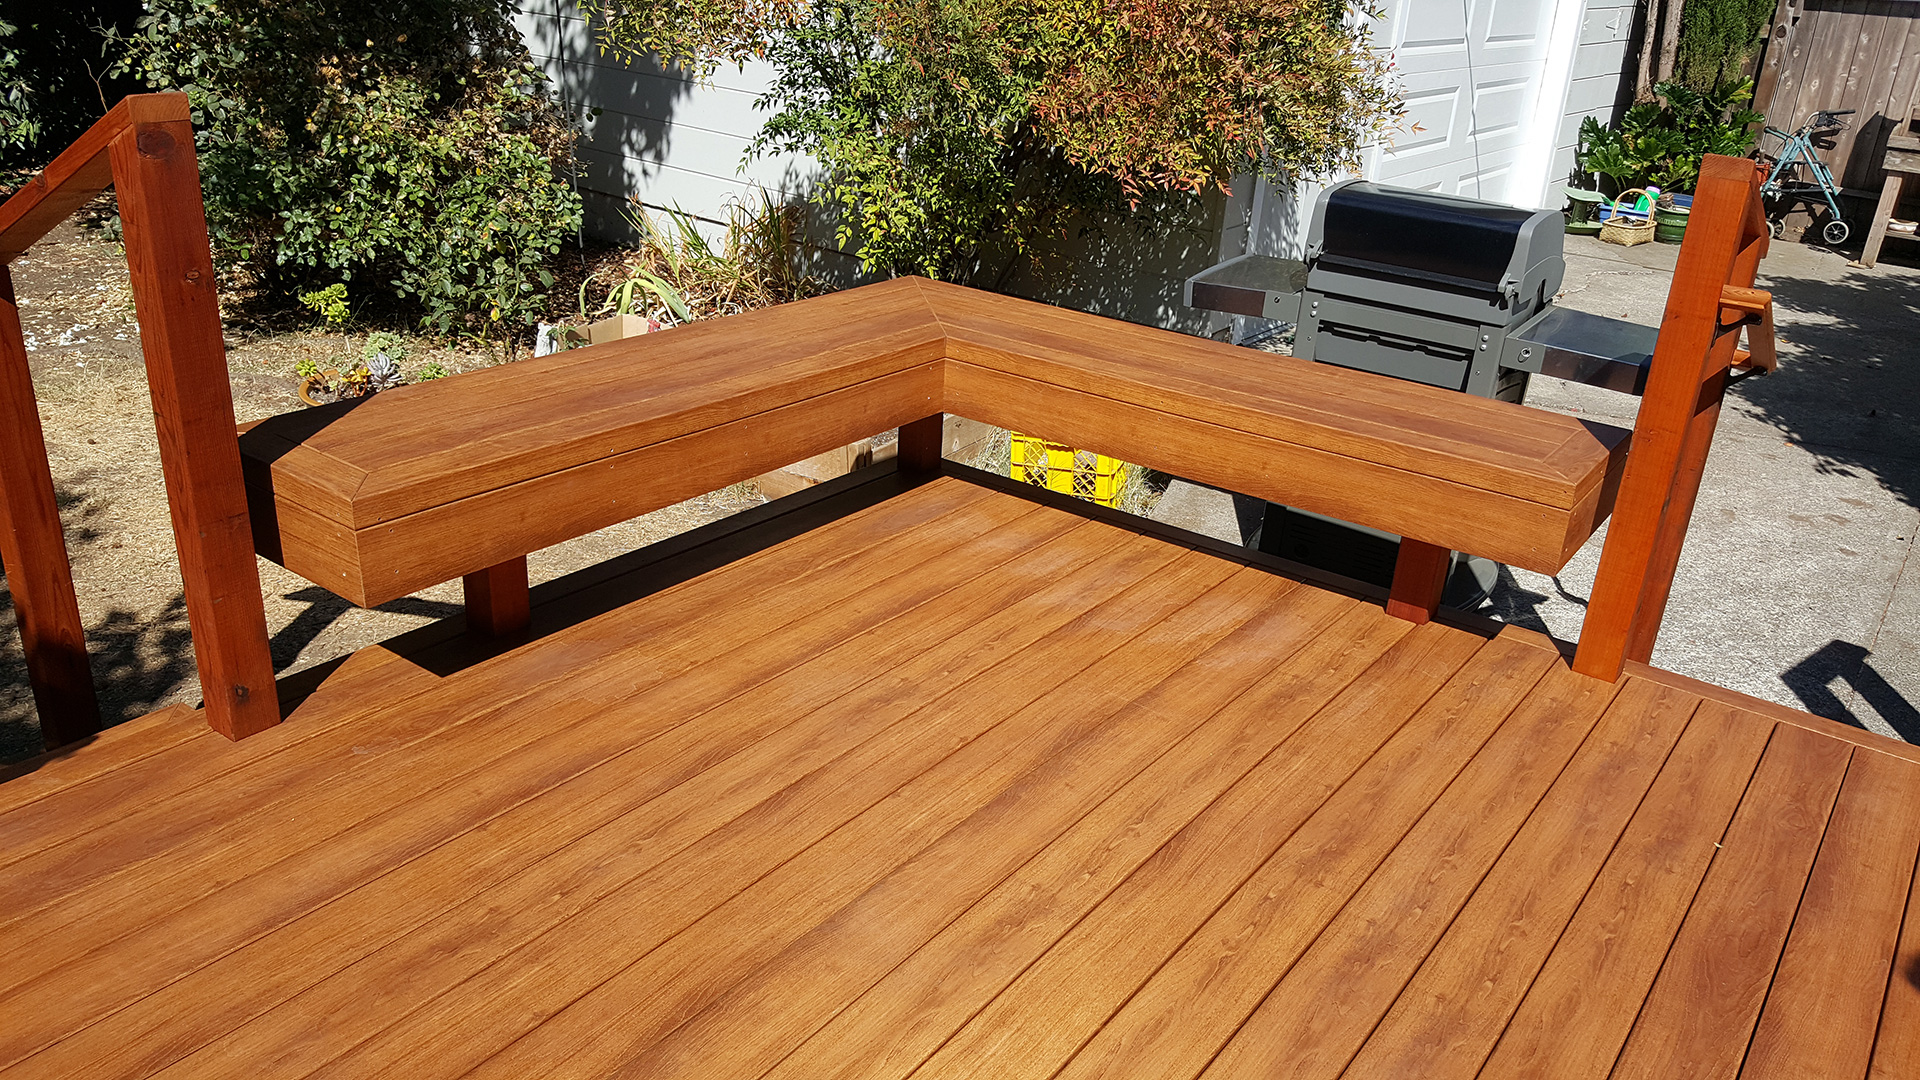 Zuri Pecan Deck with Benches in Santa Rosa 1